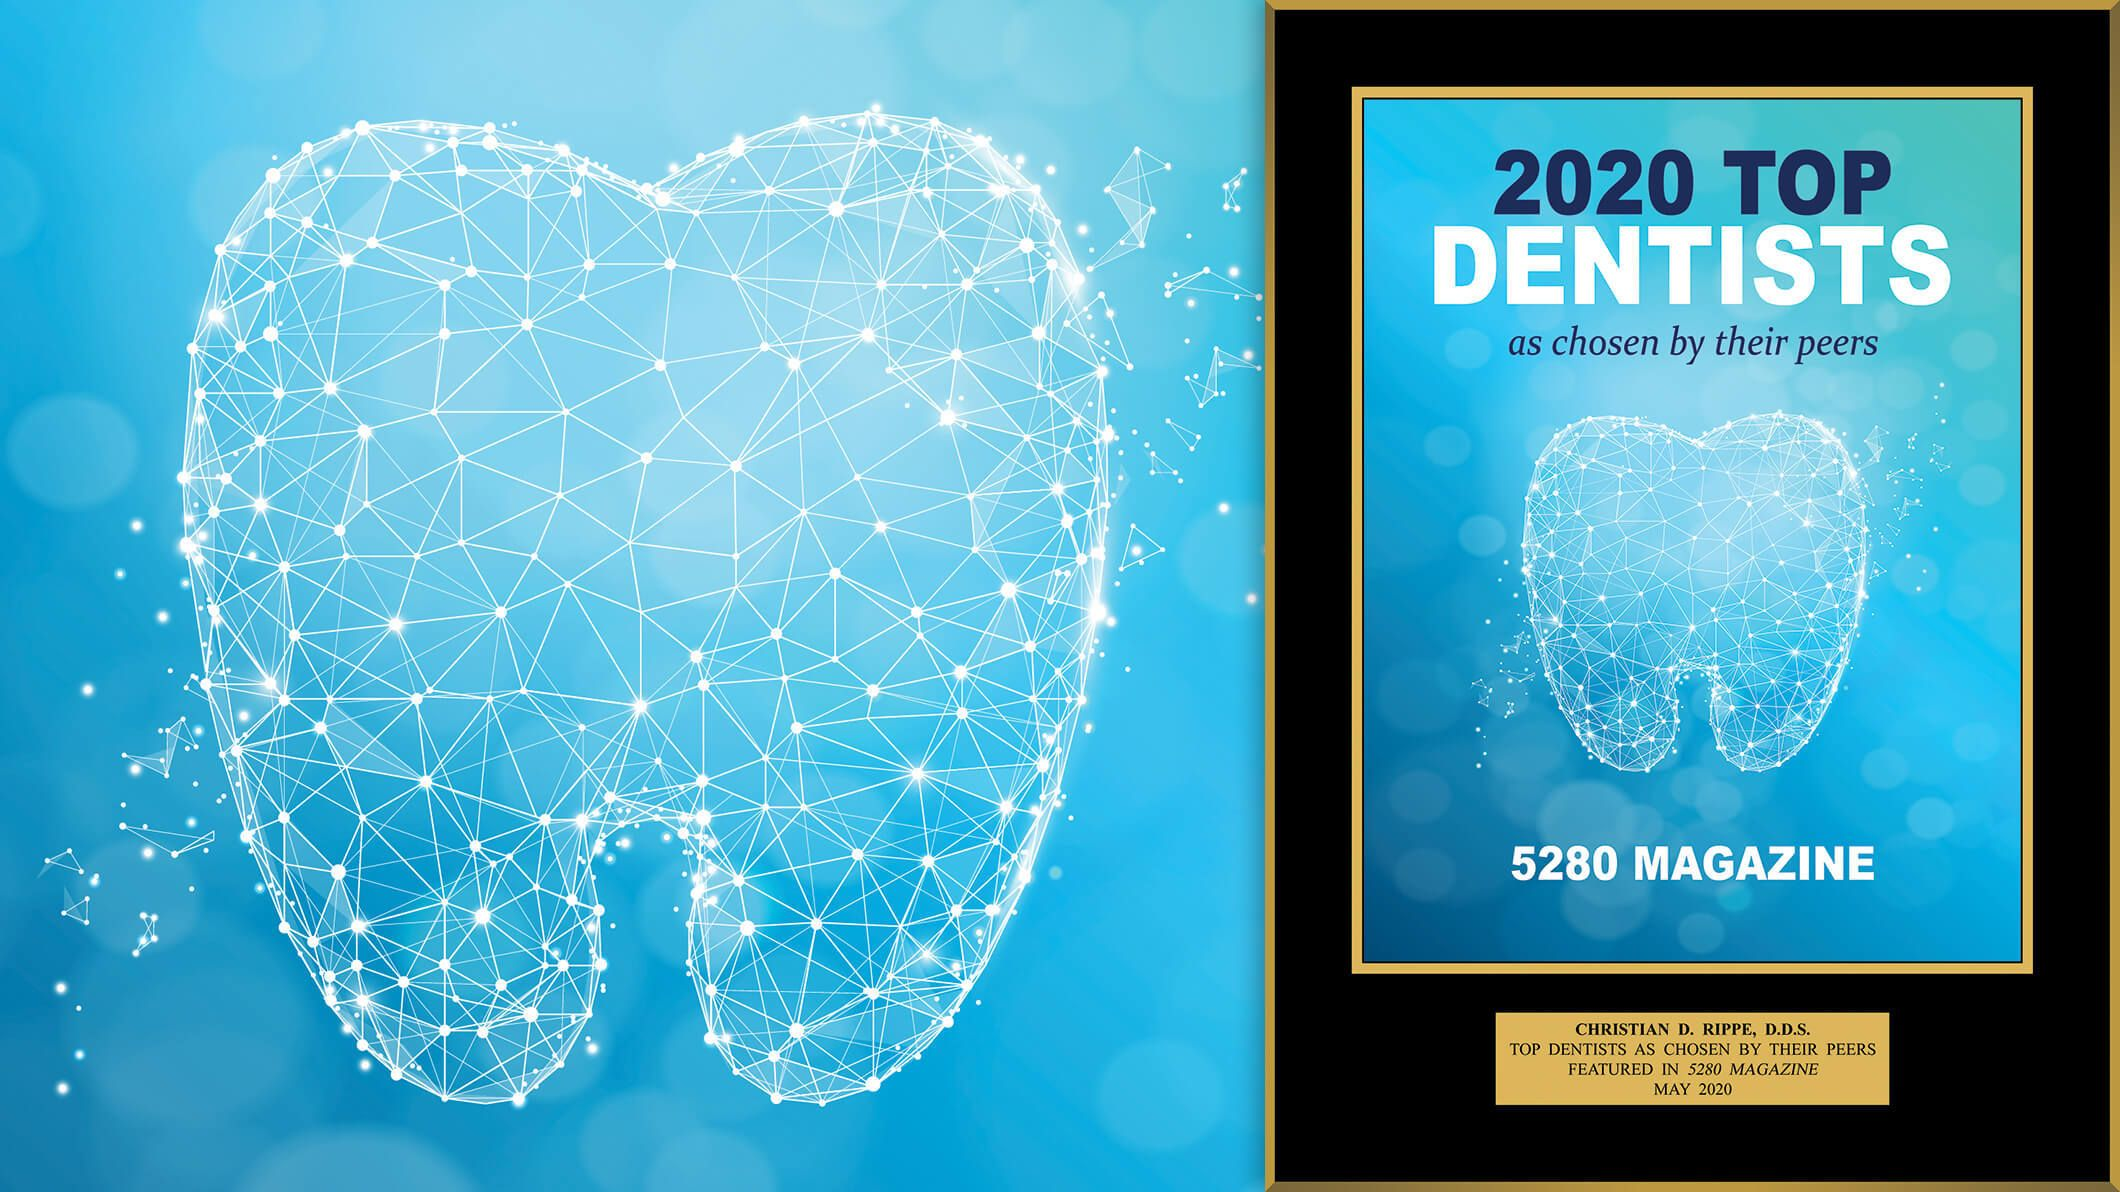 2020 Top Dentist